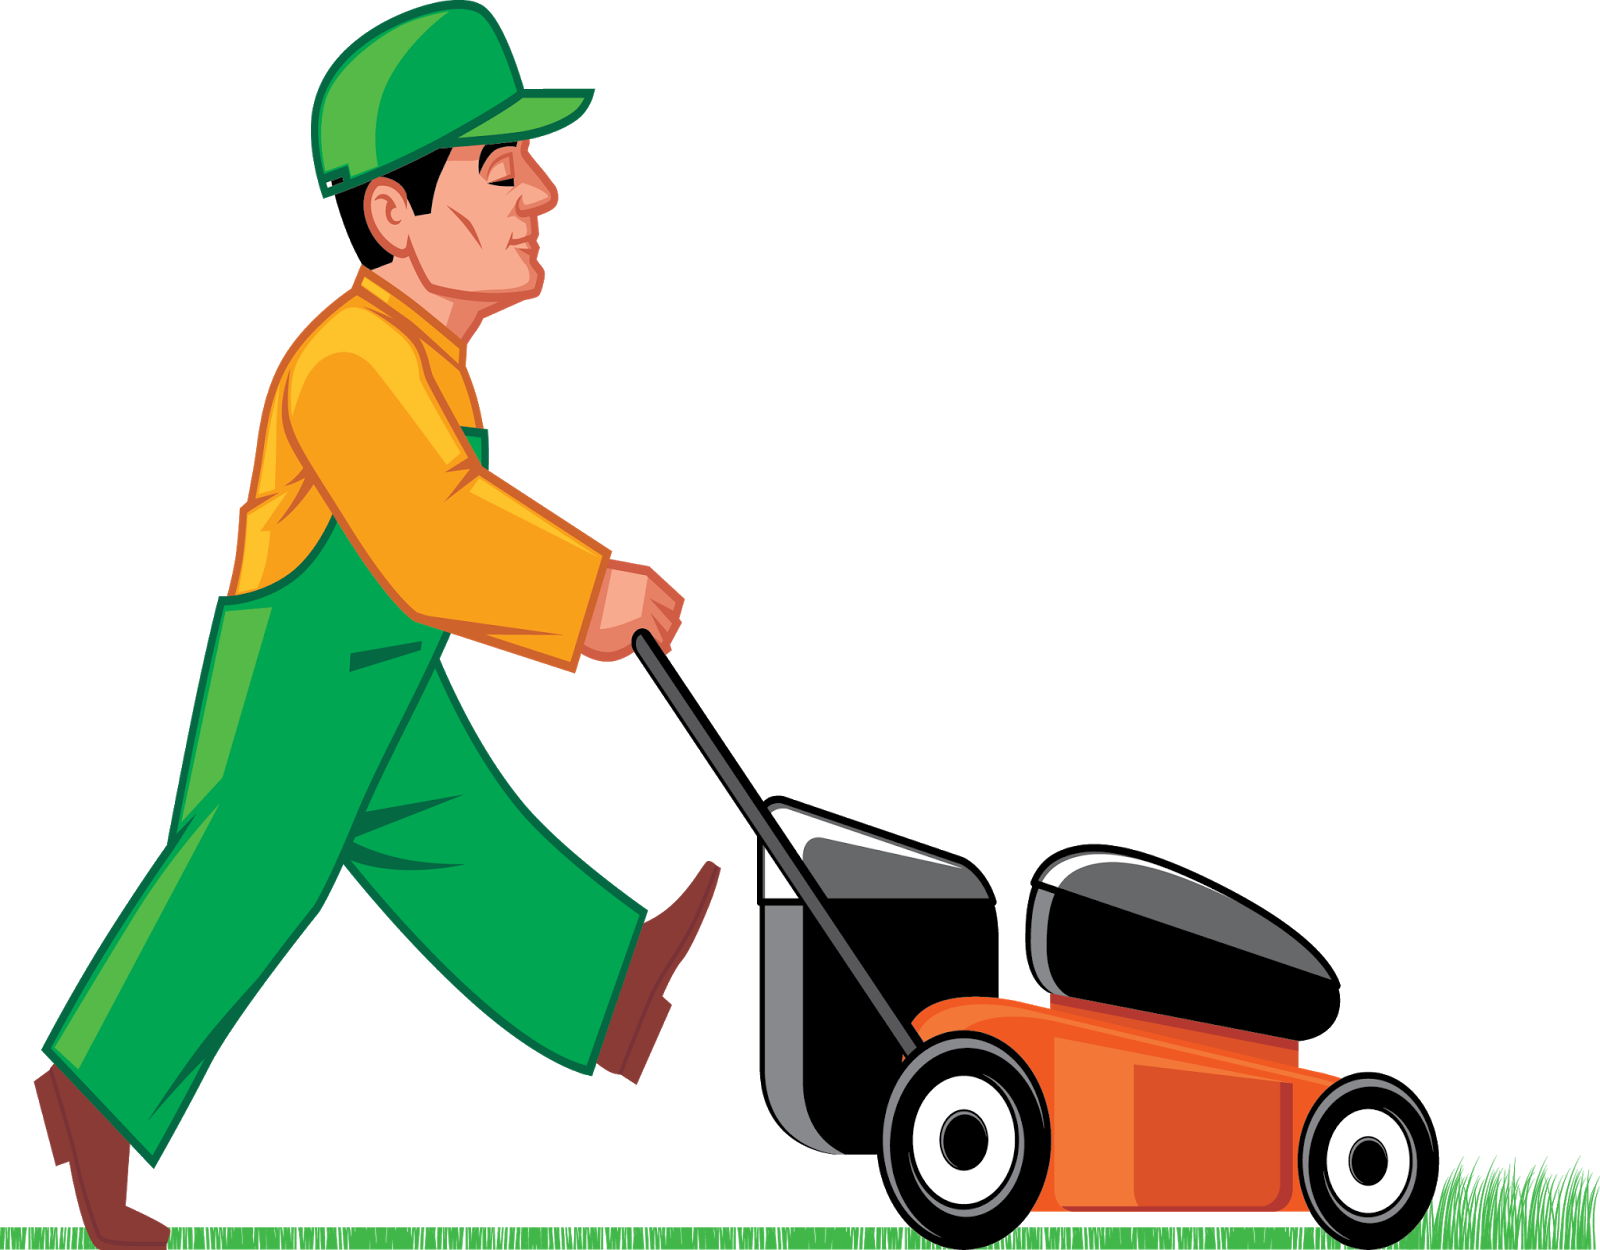 Mowing clipart lawn equipment, Mowing lawn equipment.